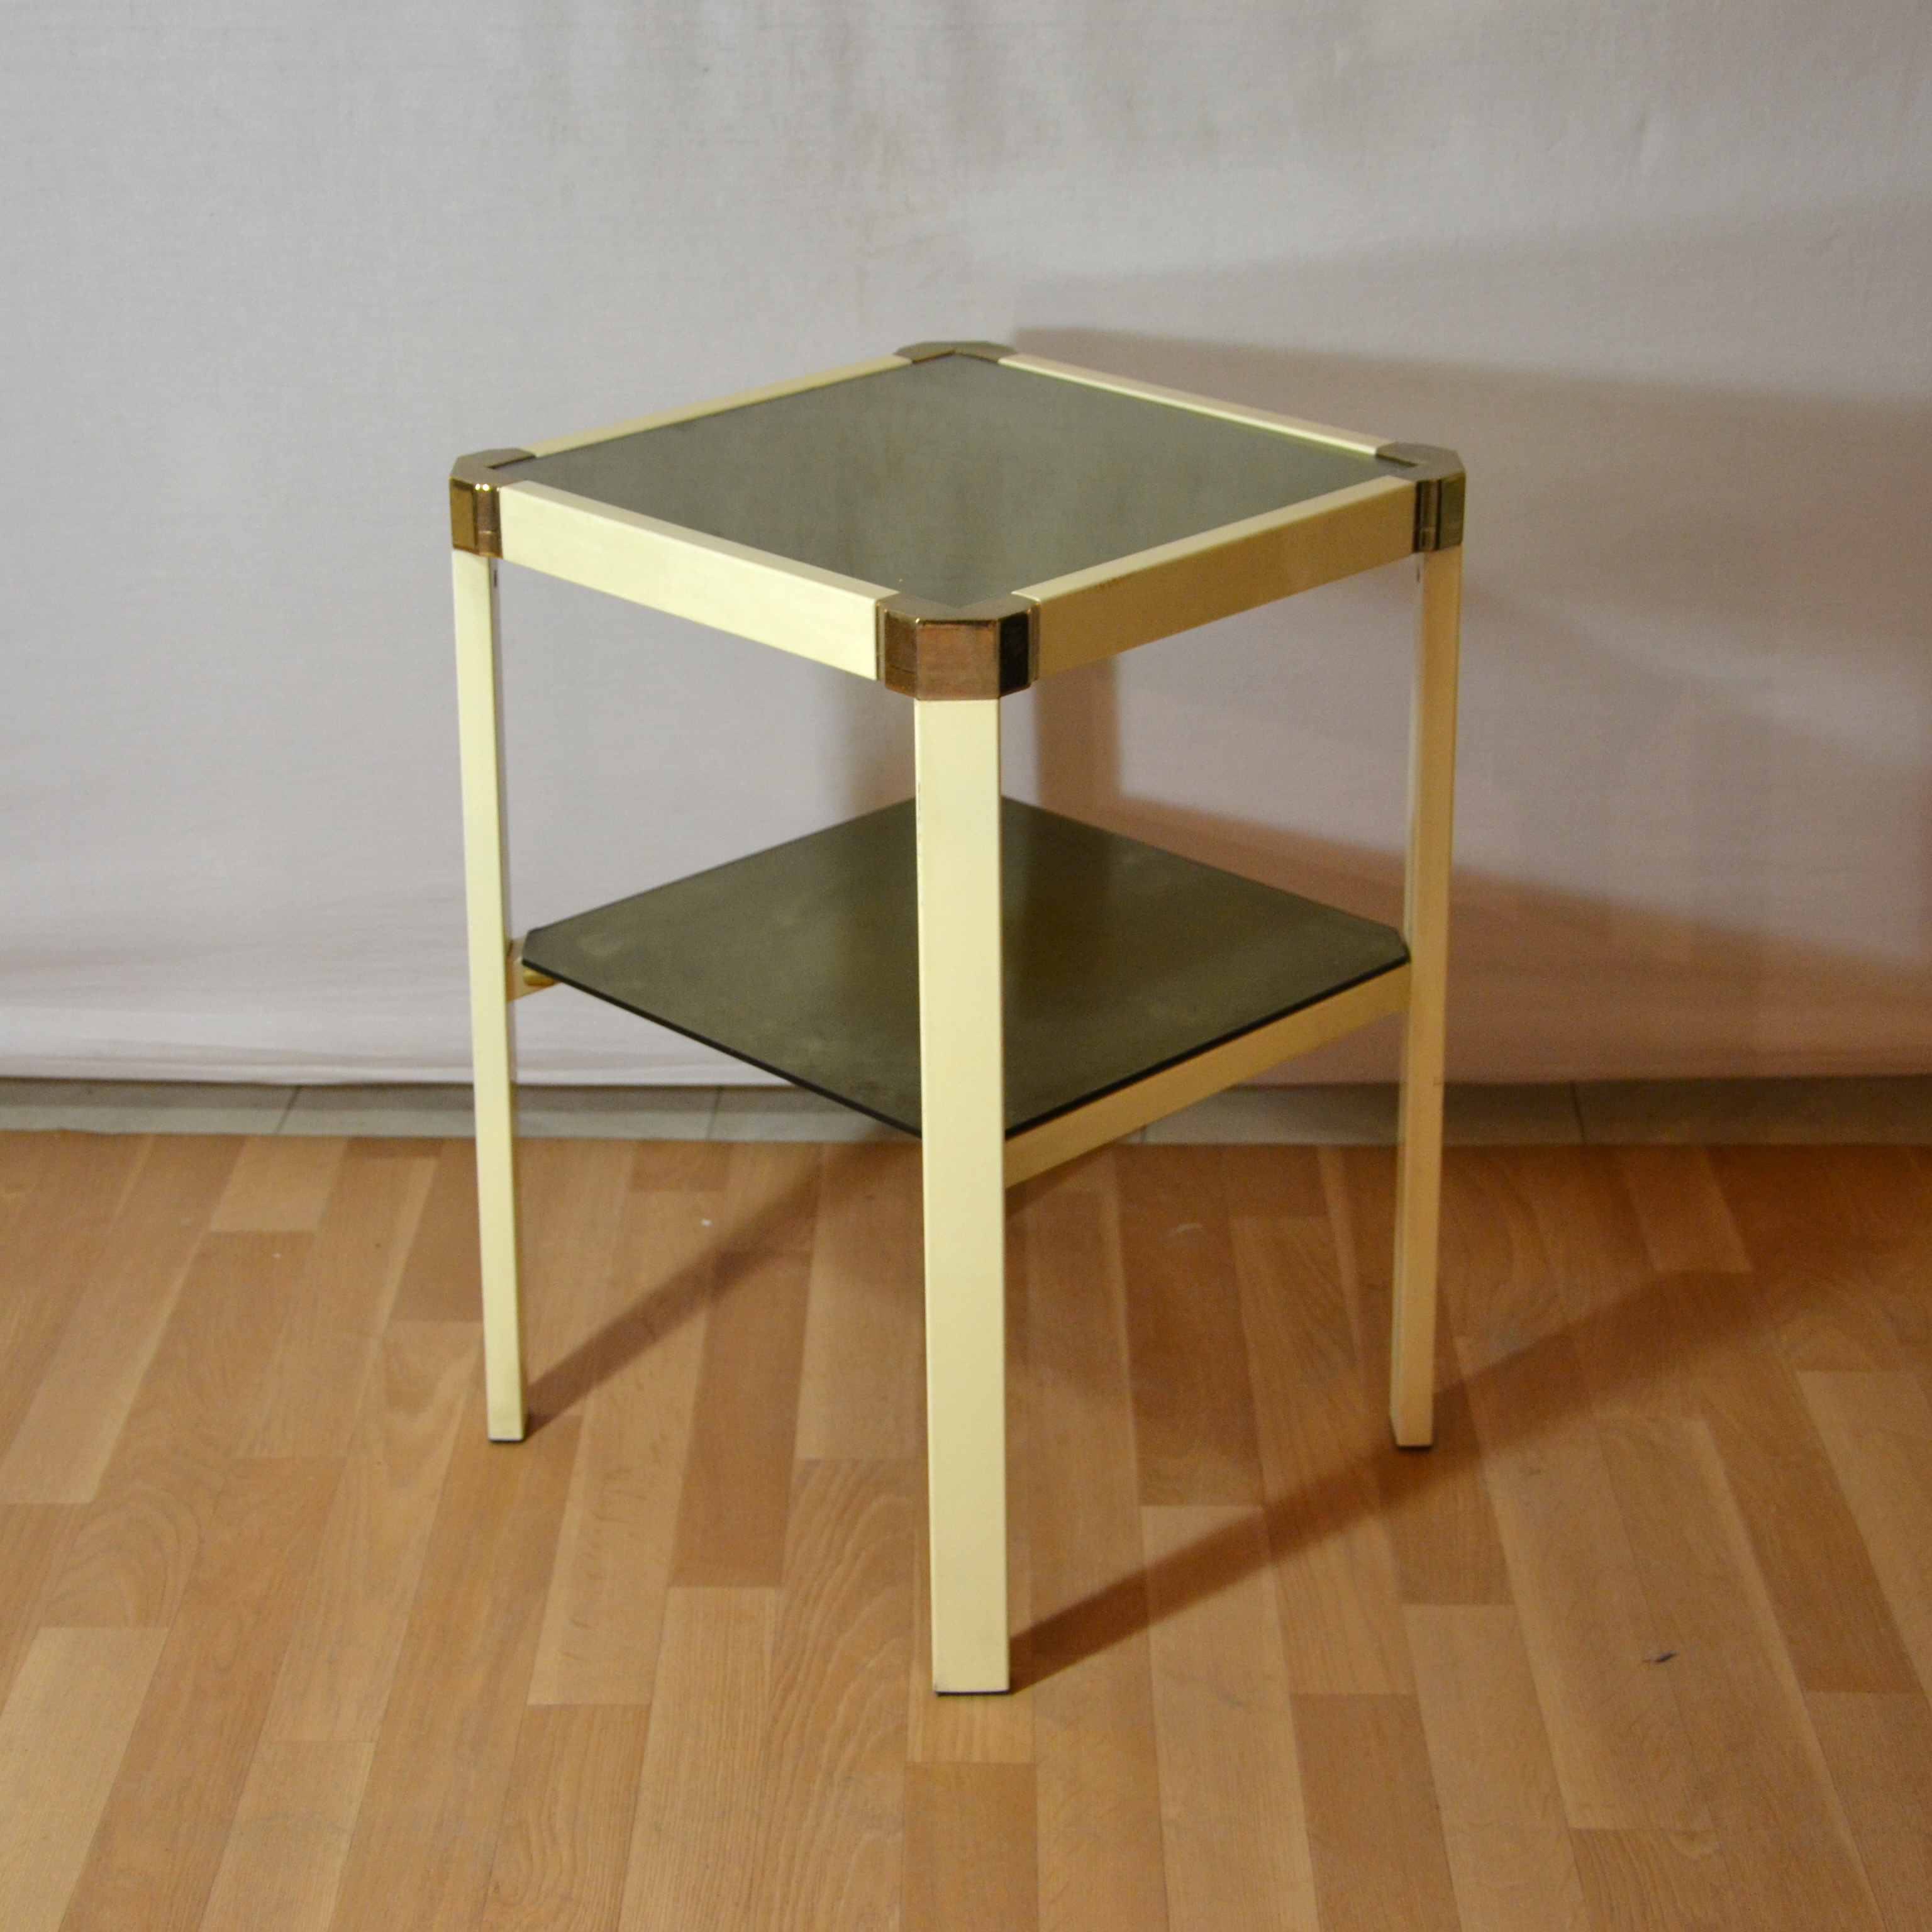 Petites tables d appoint 70 s bindies for Table d appoint miroir